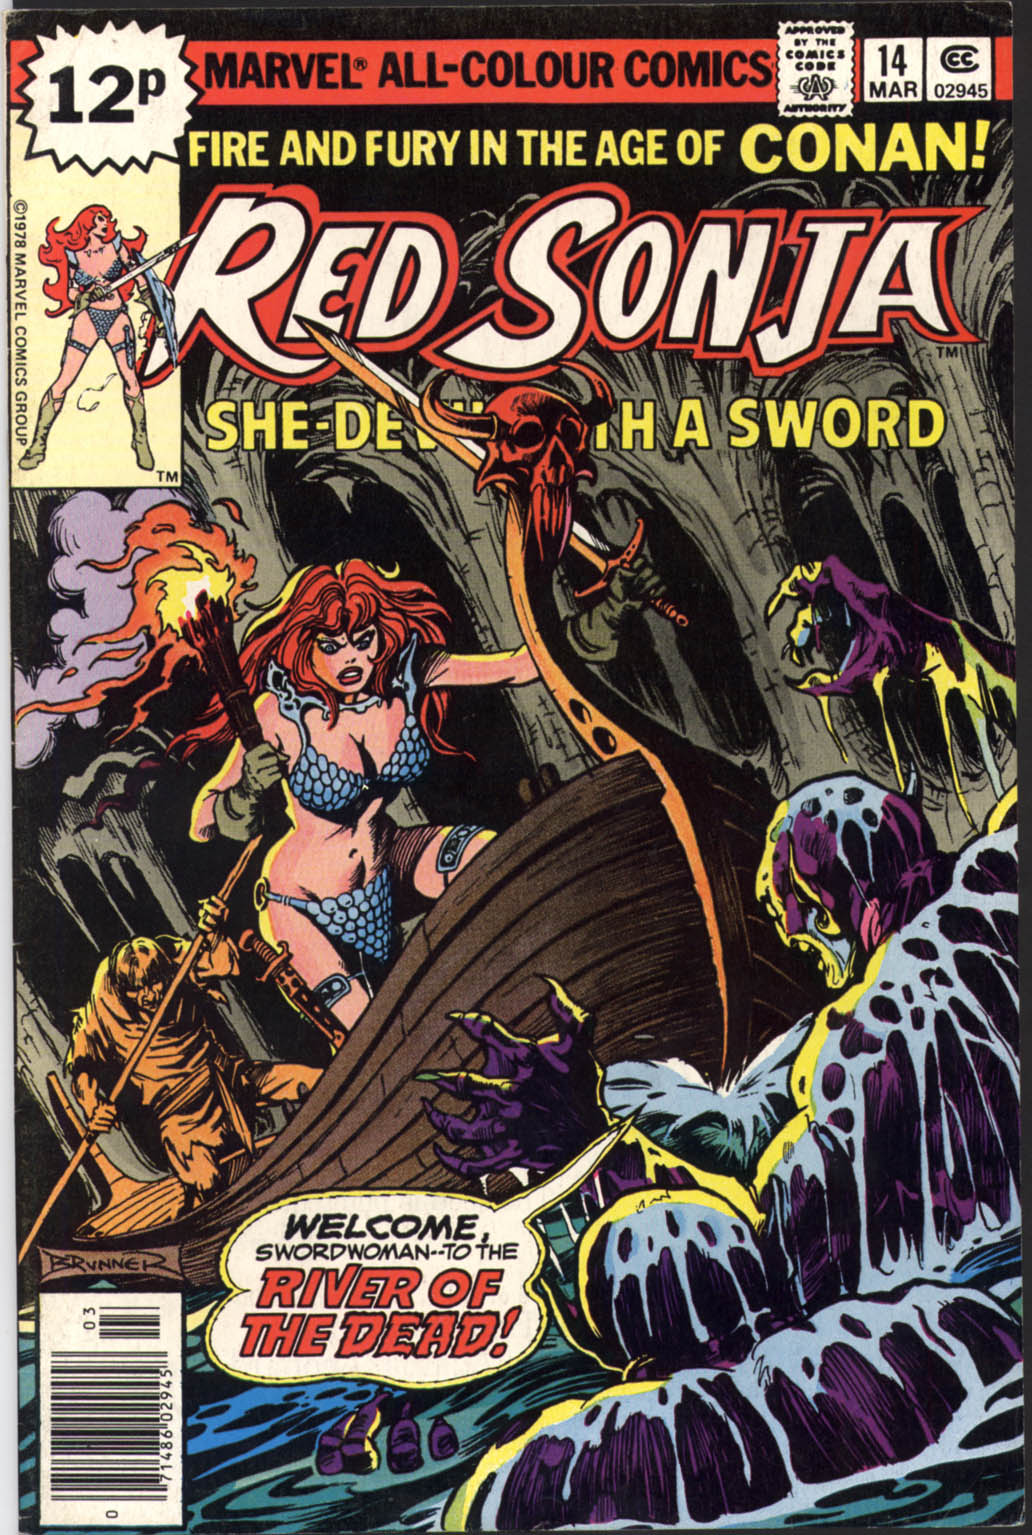 Red Sonja (1977) issue 14 - Page 1